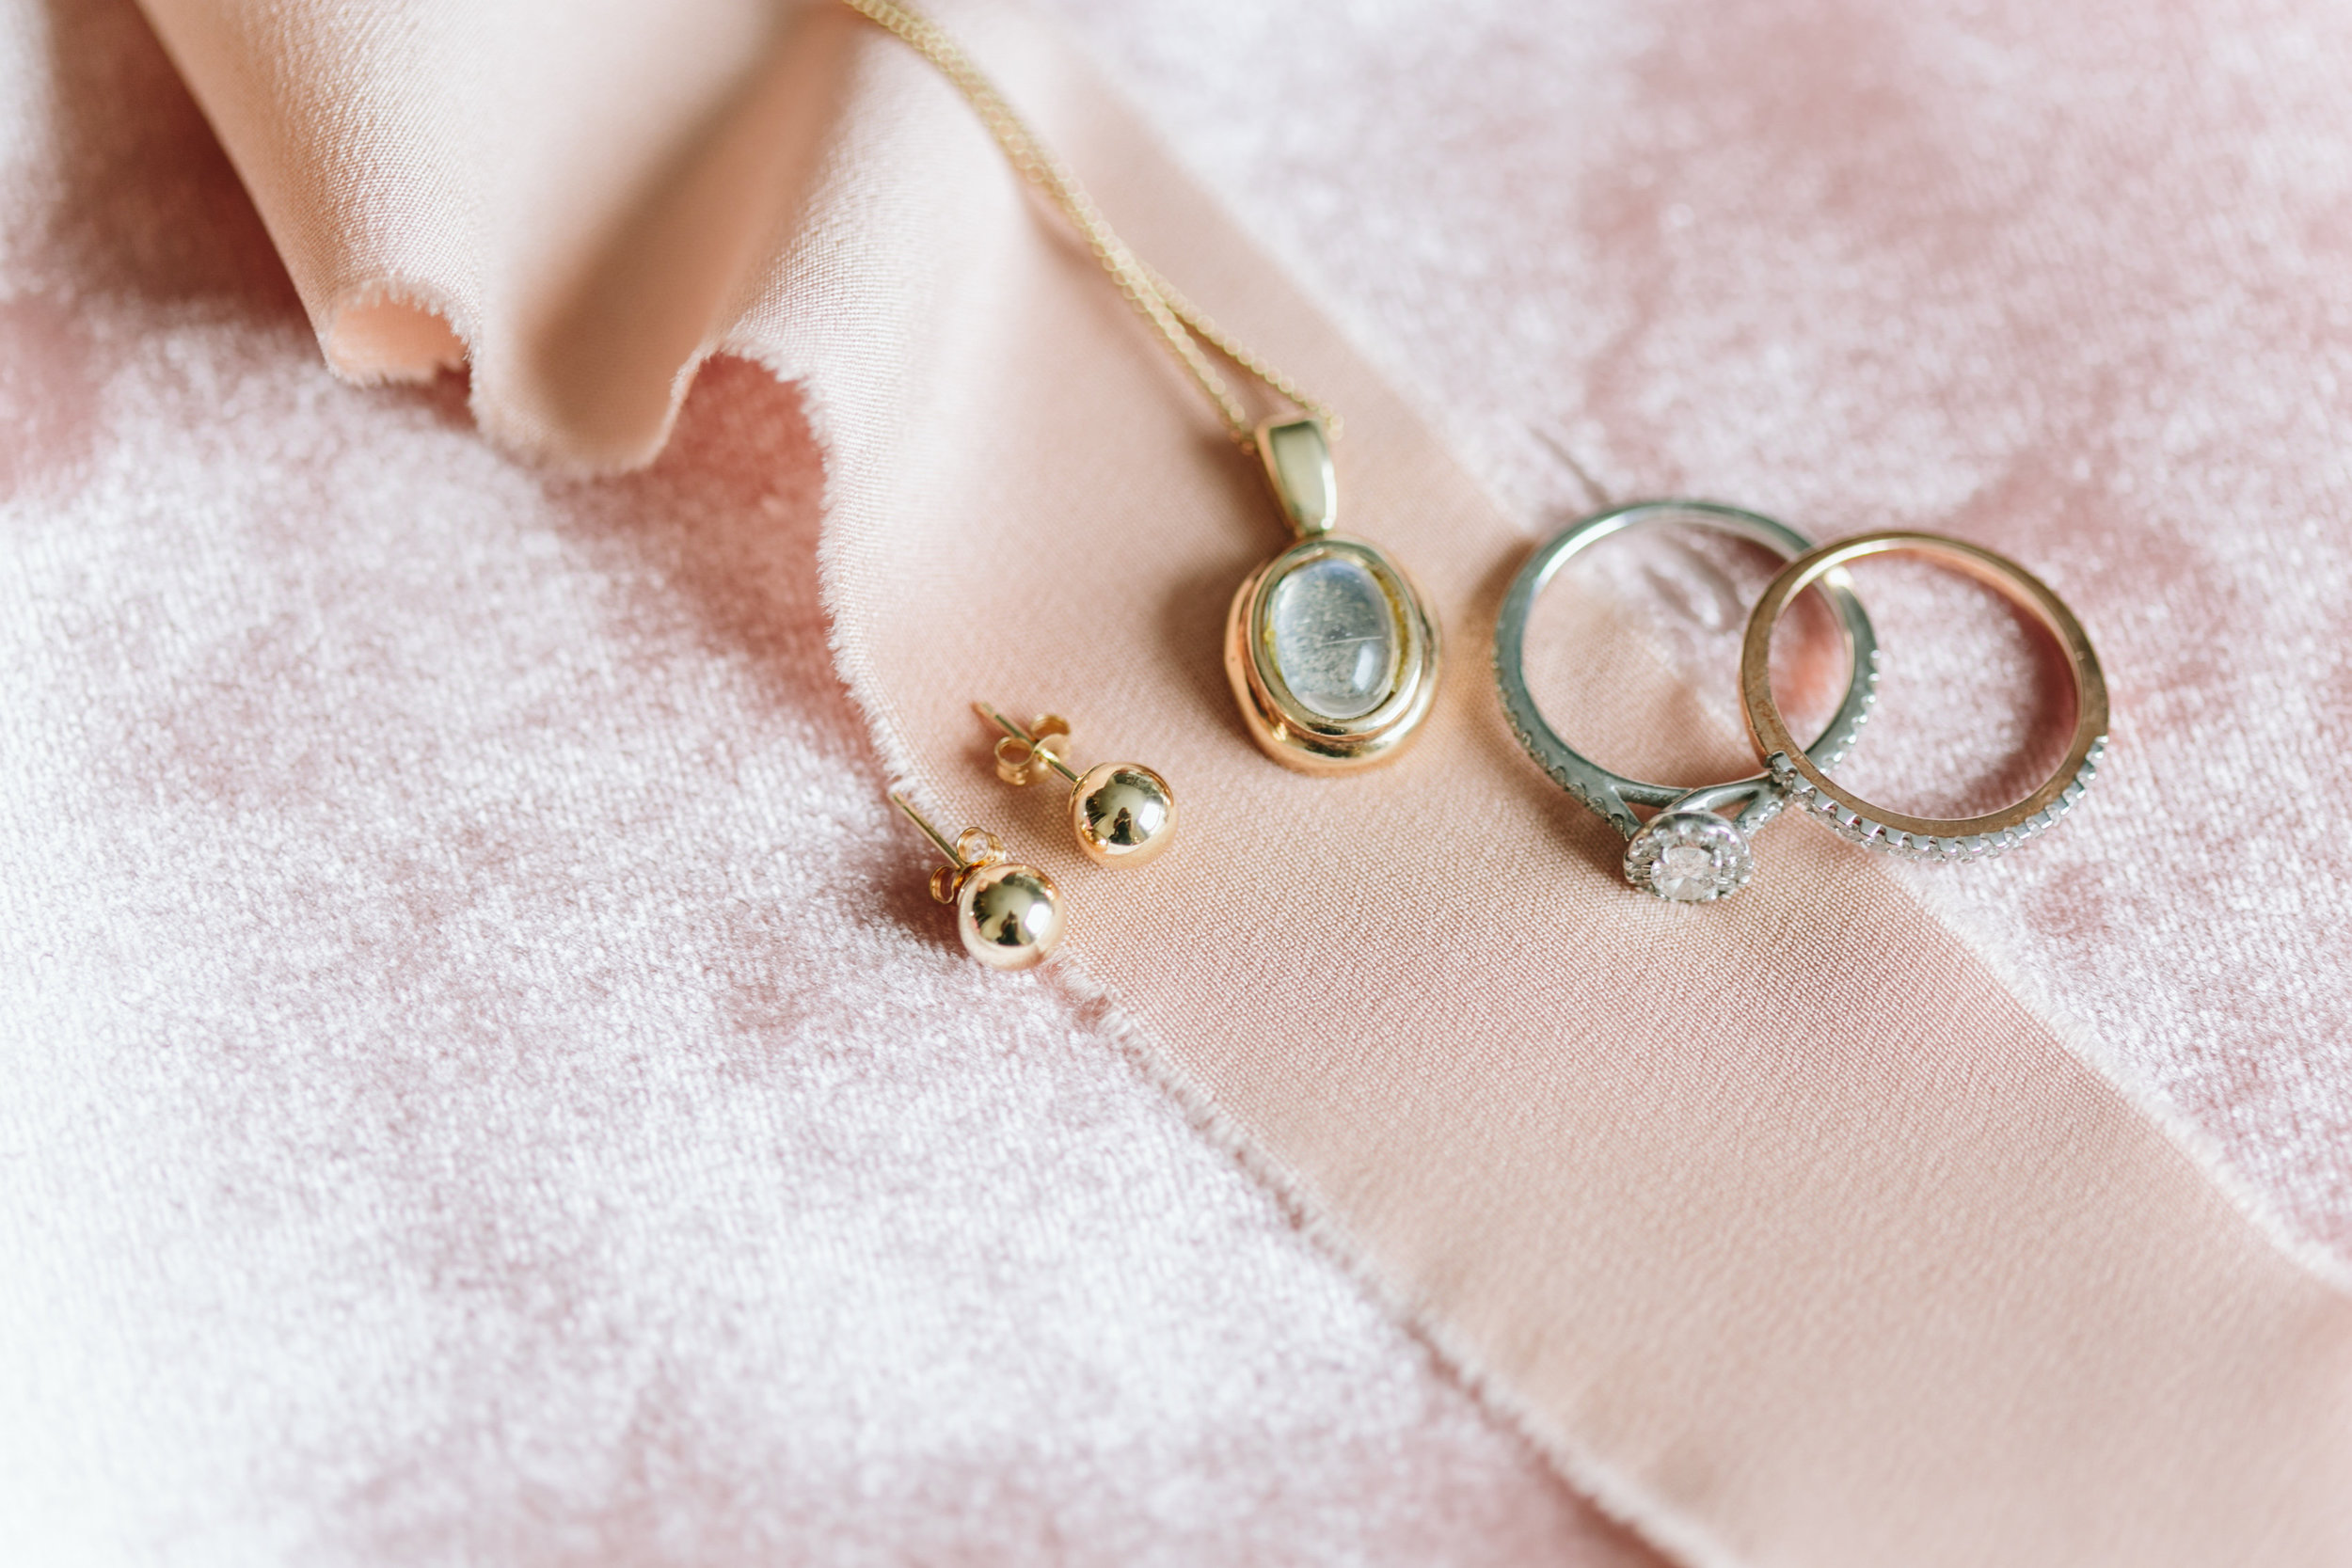 The Best Little Details from Our Wedding - How We Made Our Wedding Incredibly Personal - Something Old, Something Borrowed